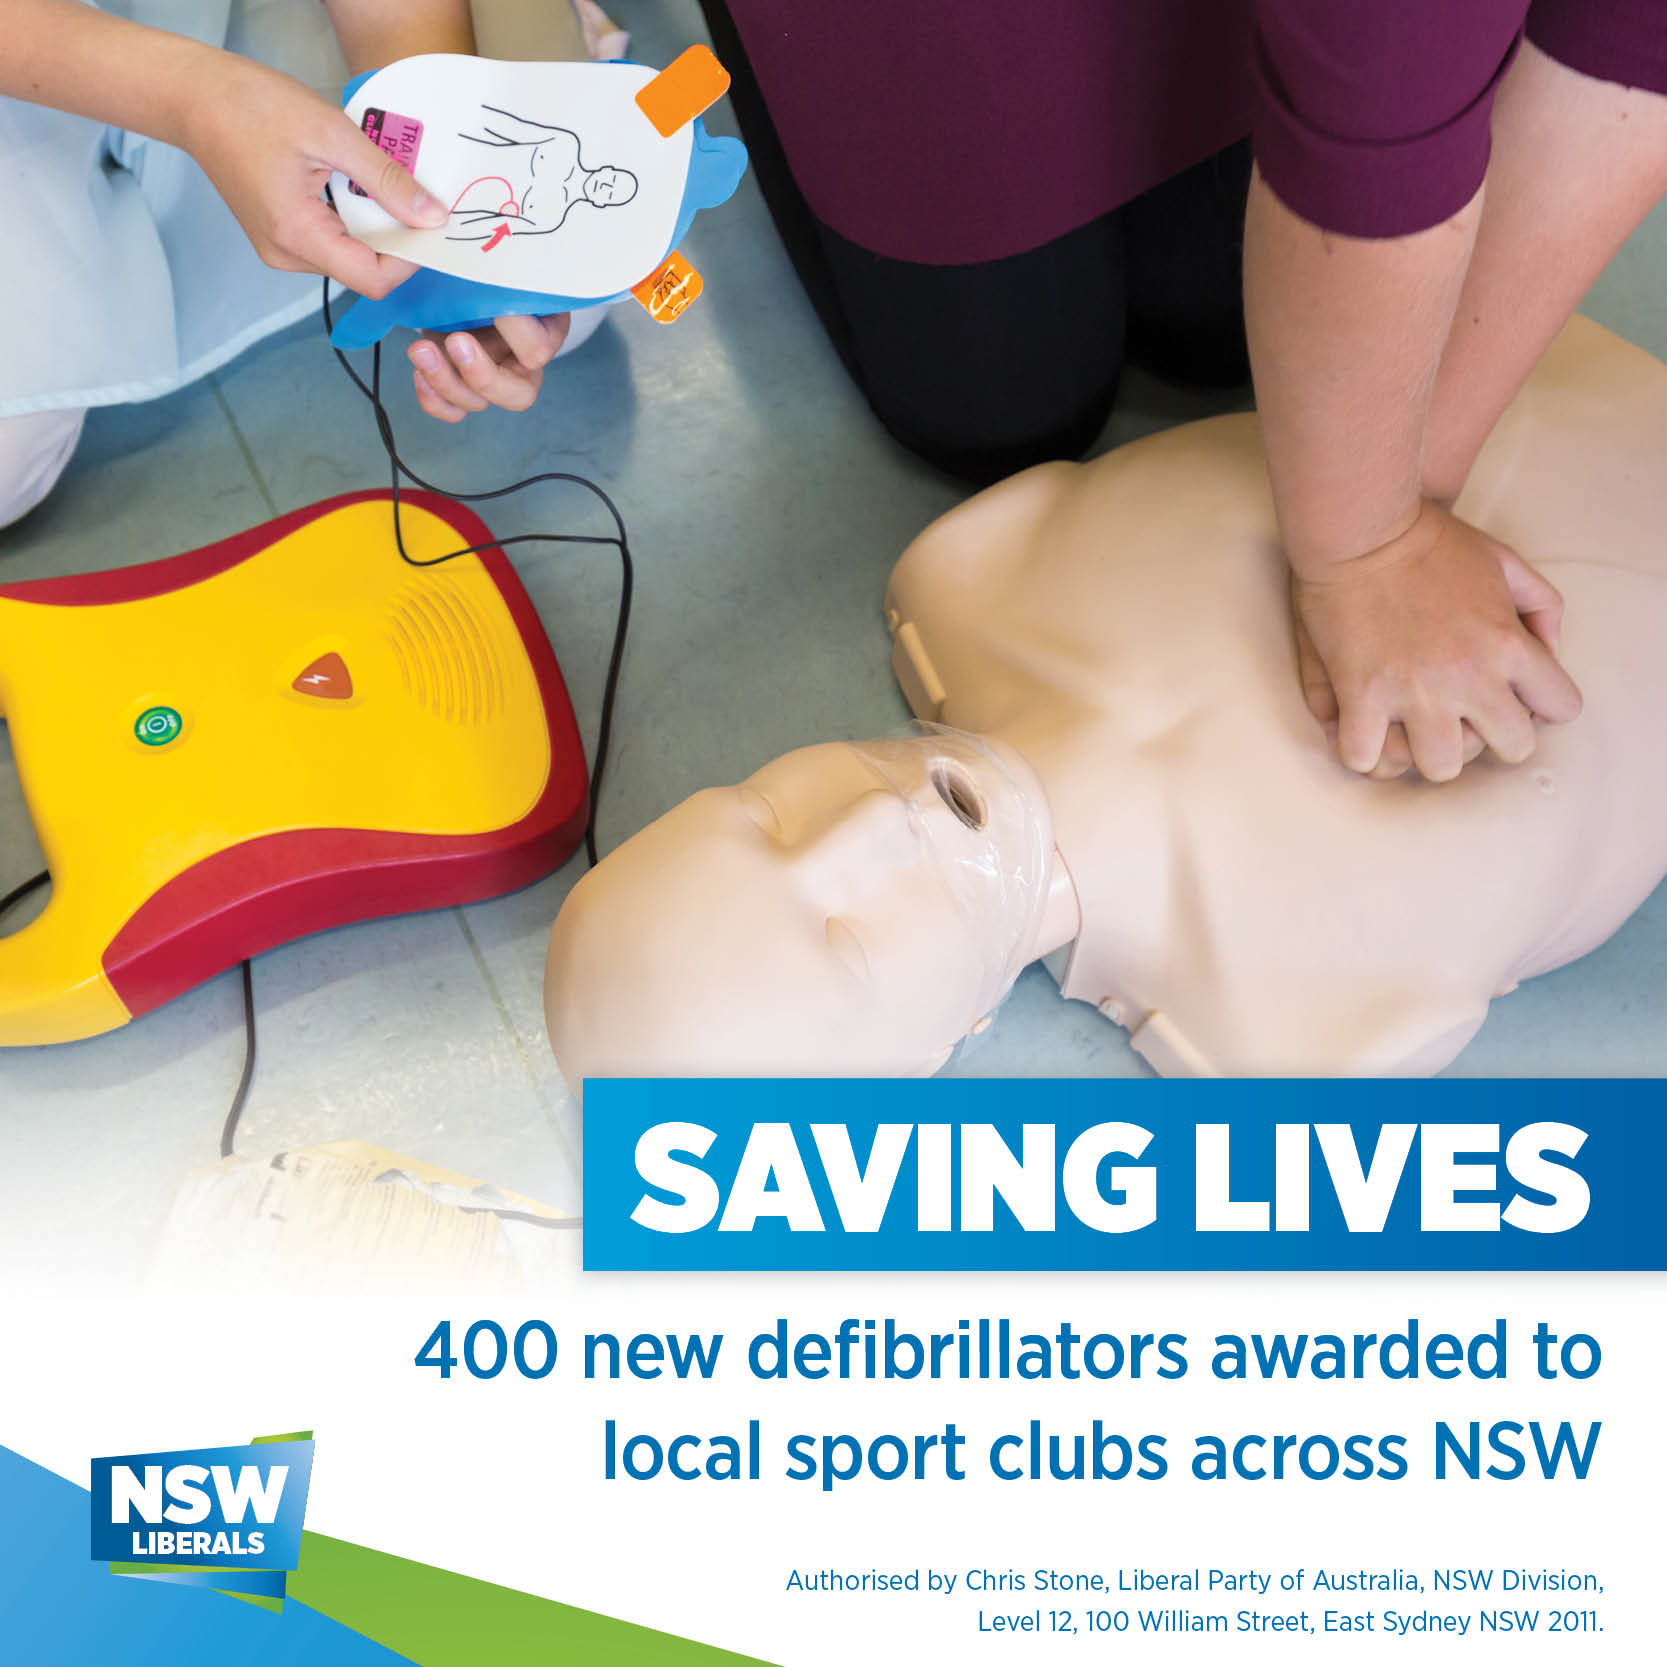 Liberal_Social_Media_Tile_-_Local_Sport_Defibrillation_Program.jpg